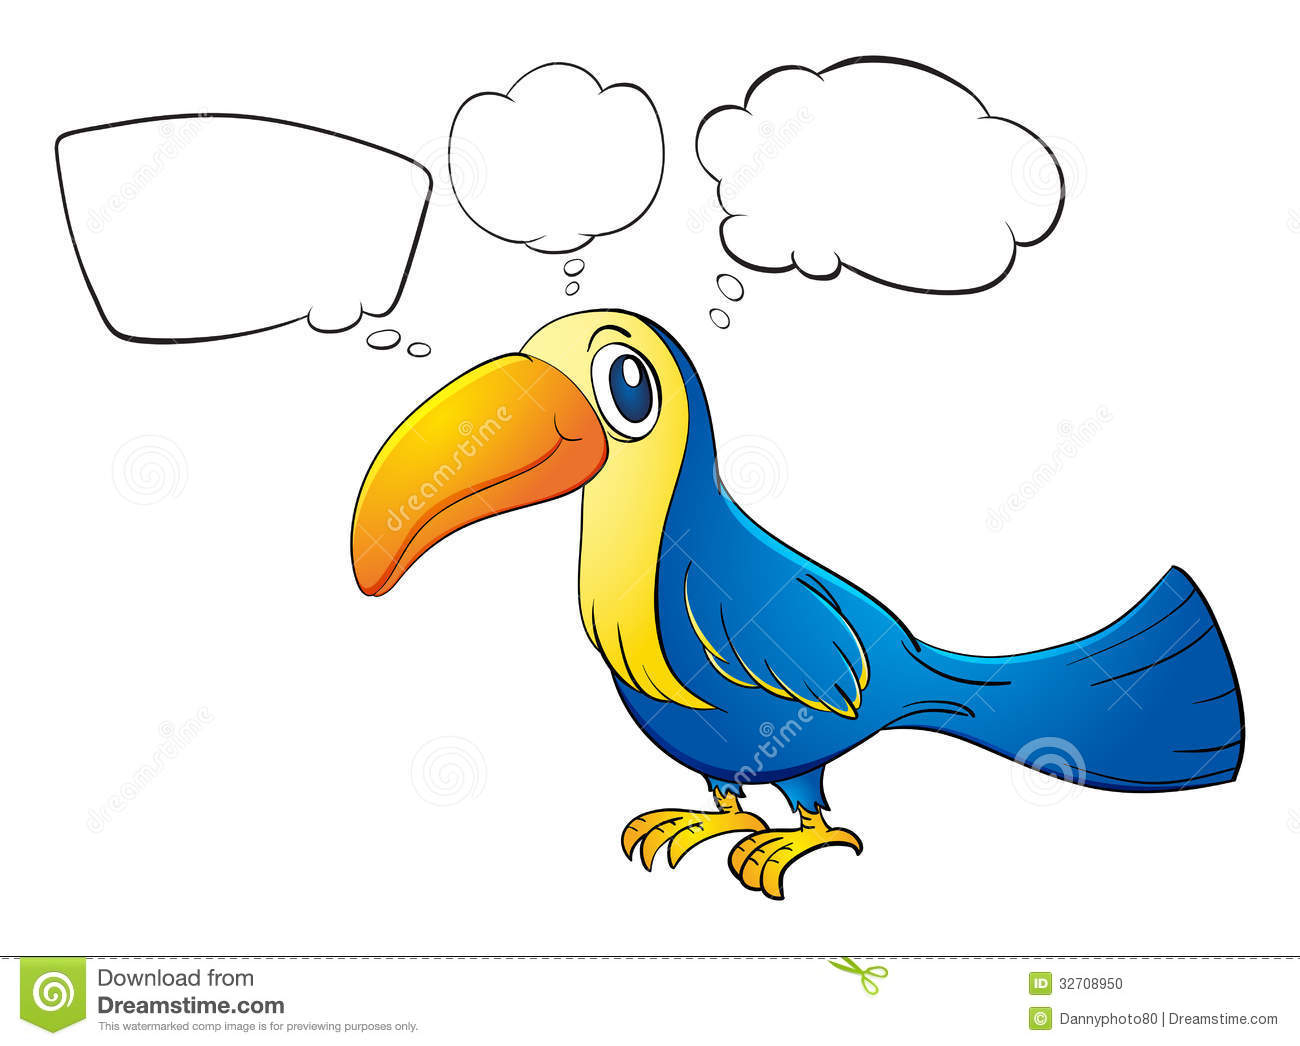 An Animal With A Long Beak Thinking Stock Vector ...